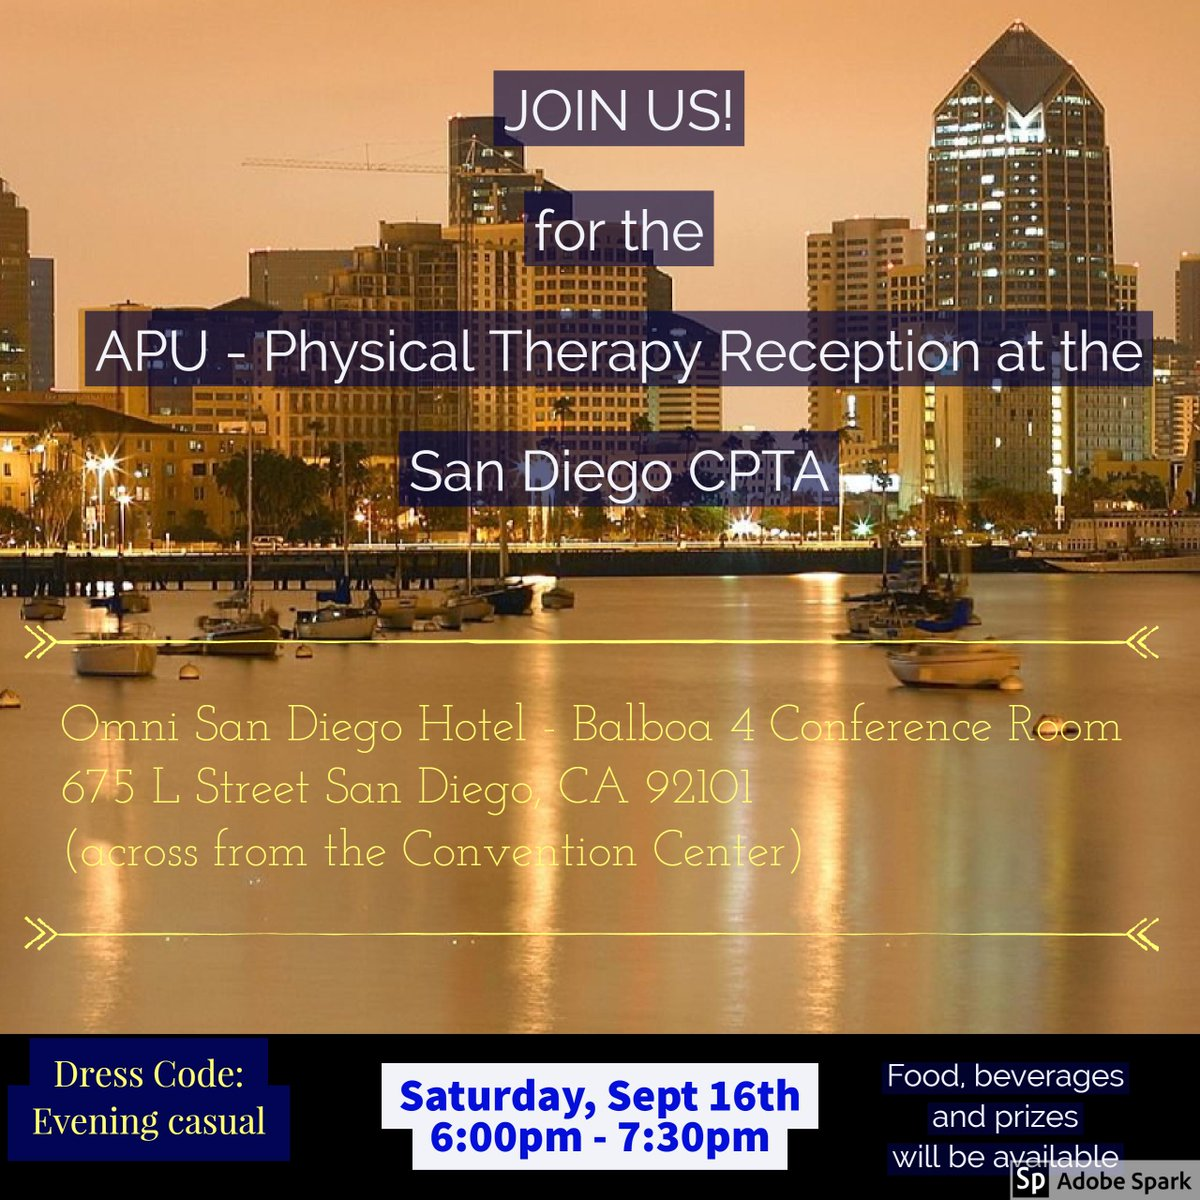 Generalist physical therapy - Rsvp To Attend The Apu Pt Alumni Reception By 9 13 We Can T Wait To See You To Rsvp Click On The Link Https Goo Gl Forms 6bepjzayvdvul2pc2